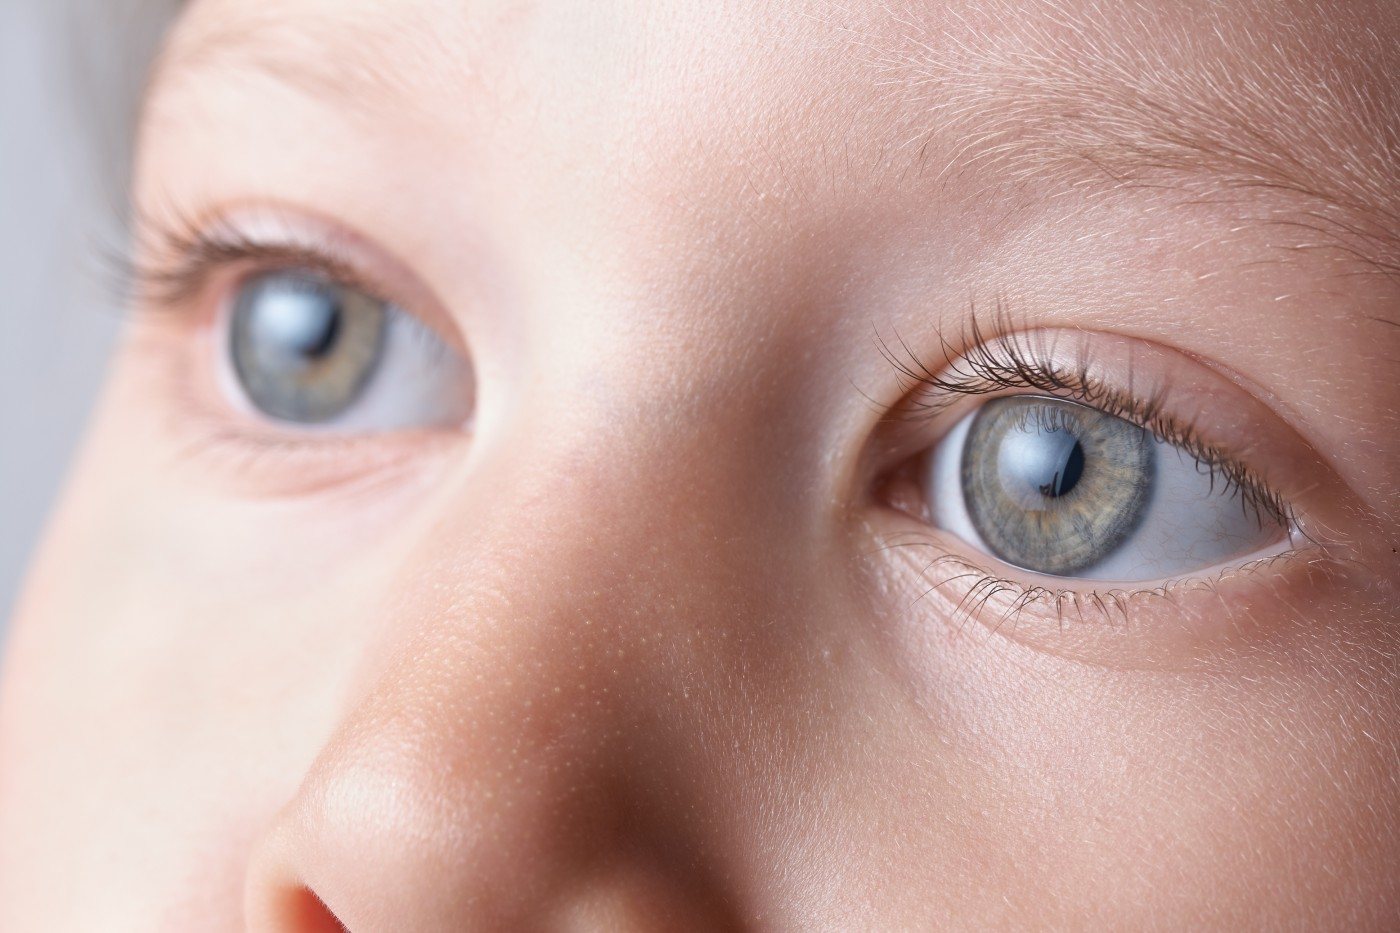 Eye Growth Mechanism Resembles the Penny Pusher Game